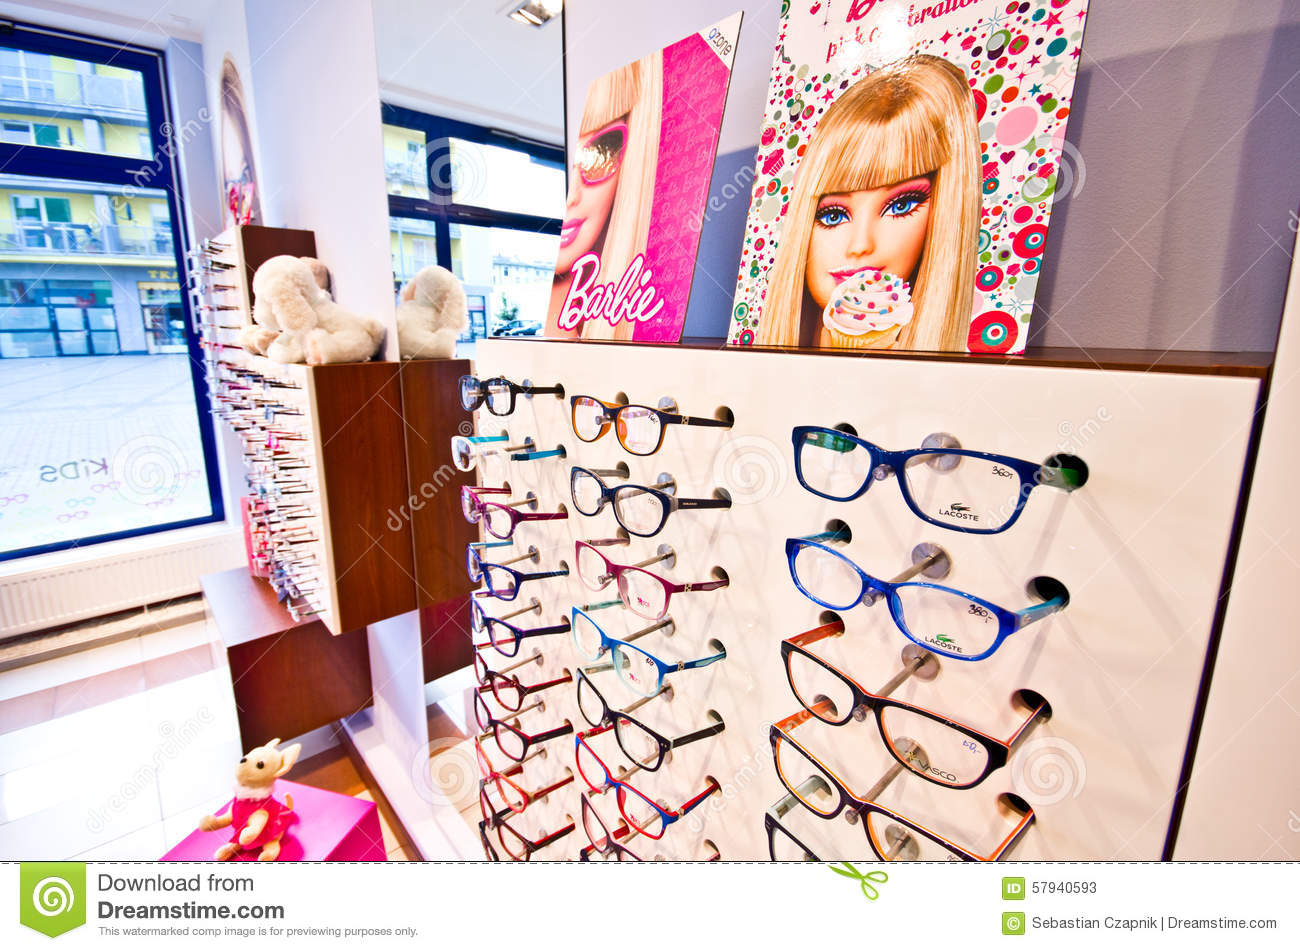 be9fd85e3b Barbie eyeglass collection editorial stock photo. Image of shop ...